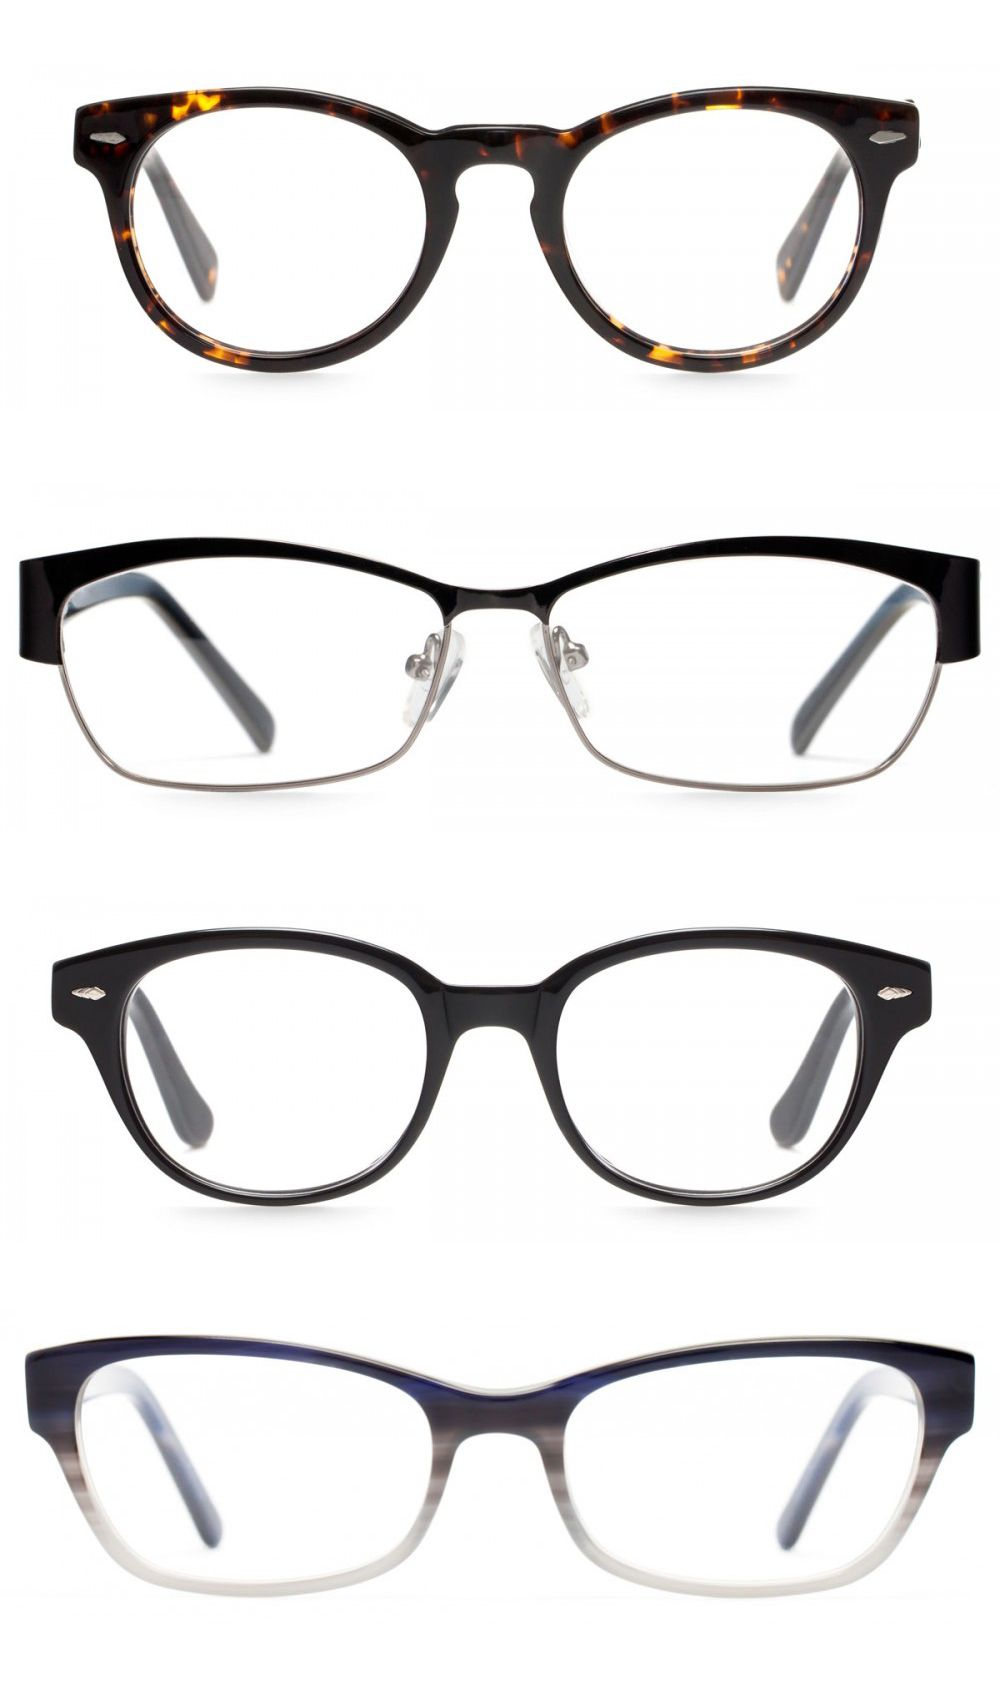 13c18e218c5 The perfect glasses for square faces